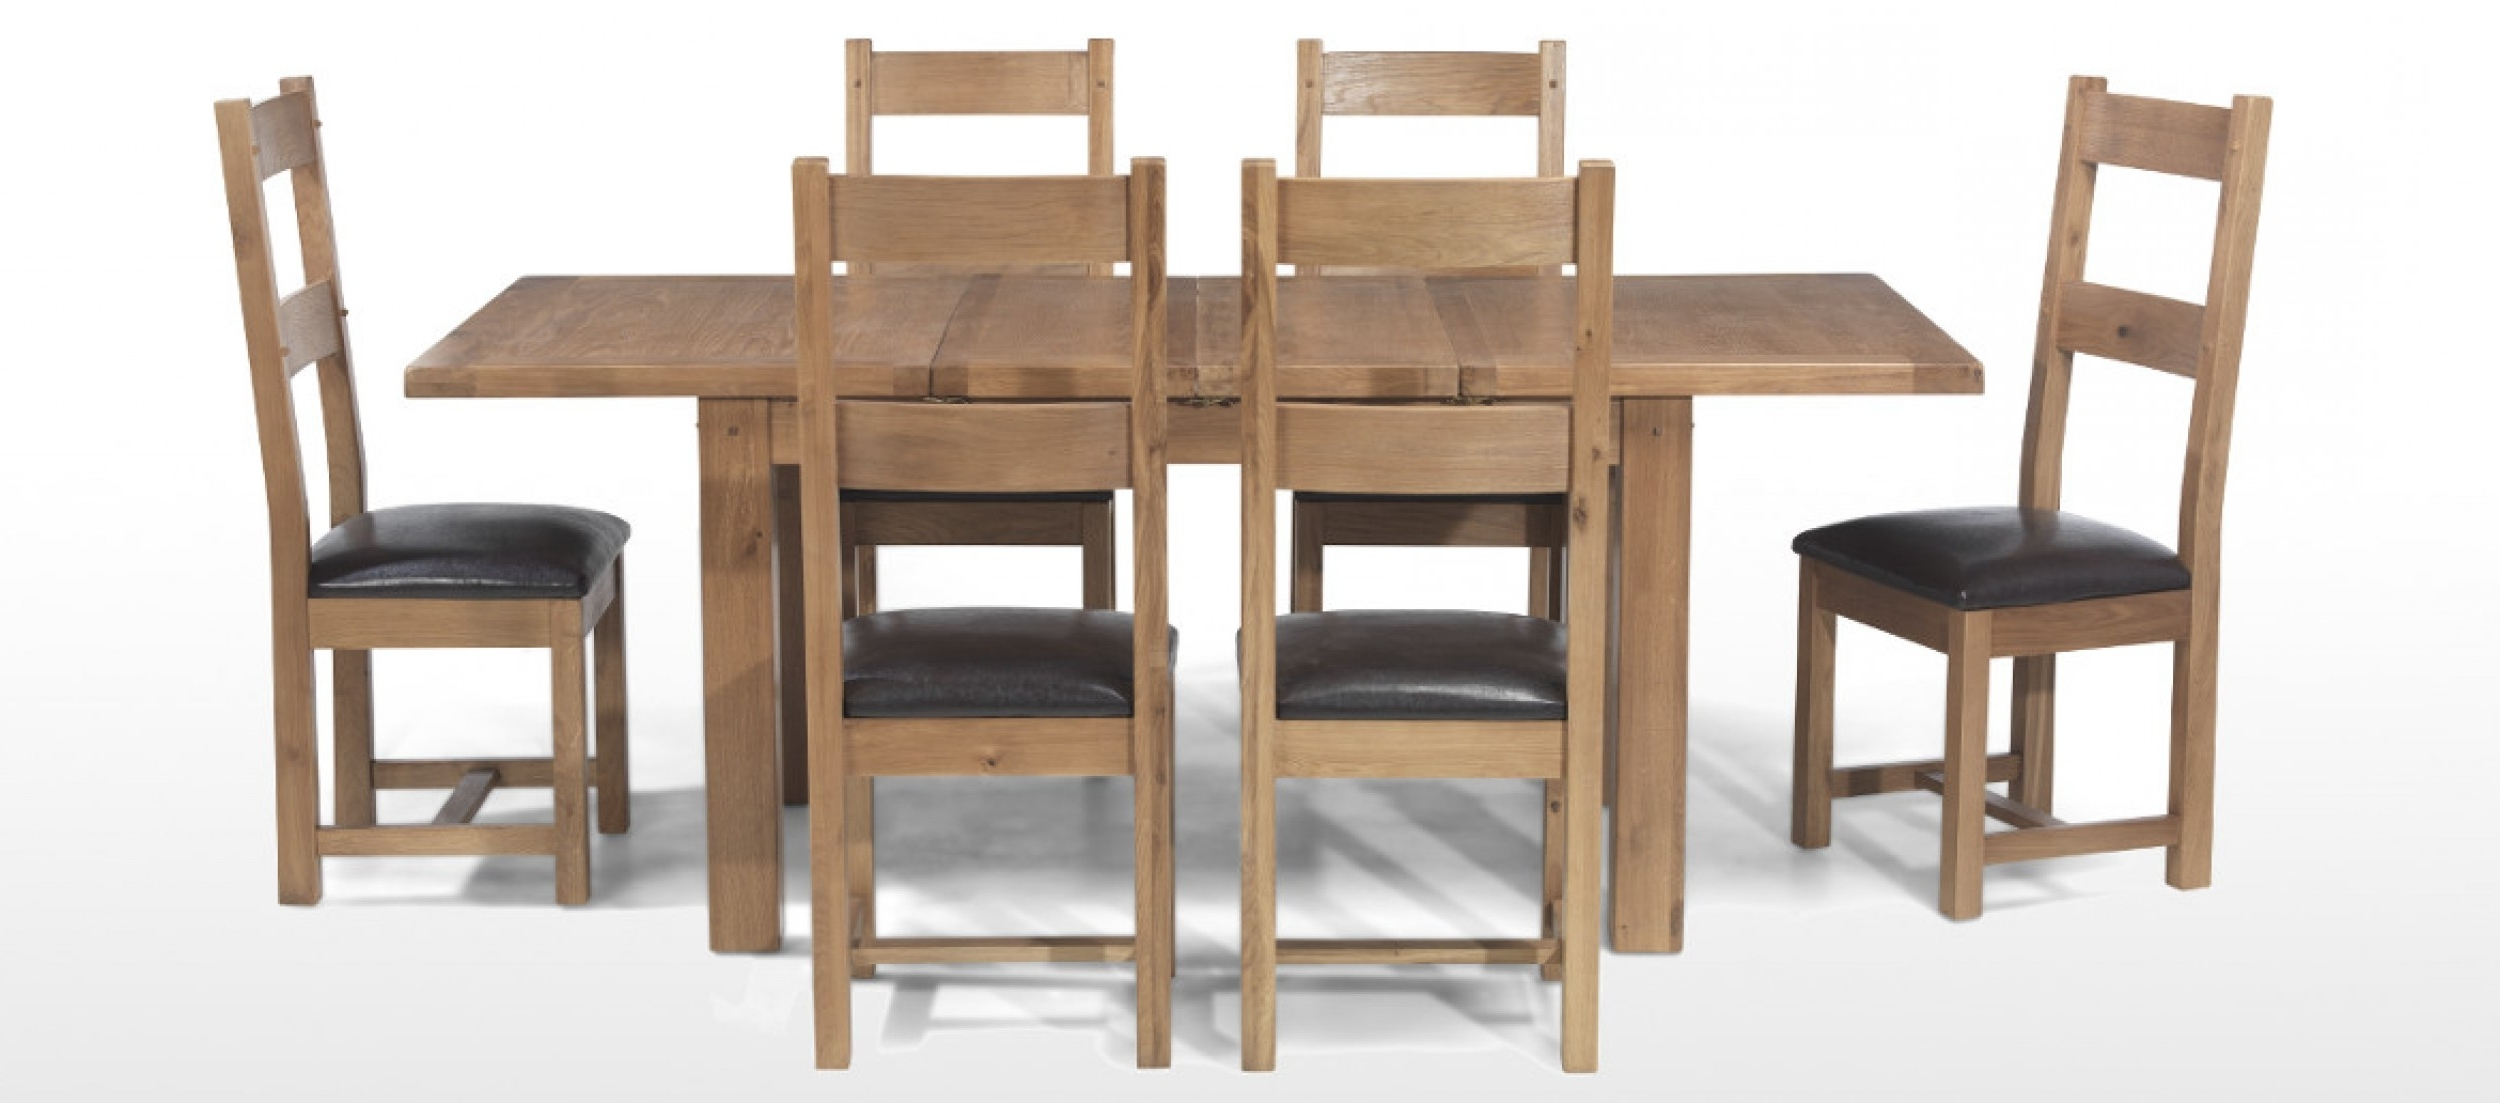 Quercus Regarding Newest Extending Dining Tables And Chairs (Gallery 6 of 25)